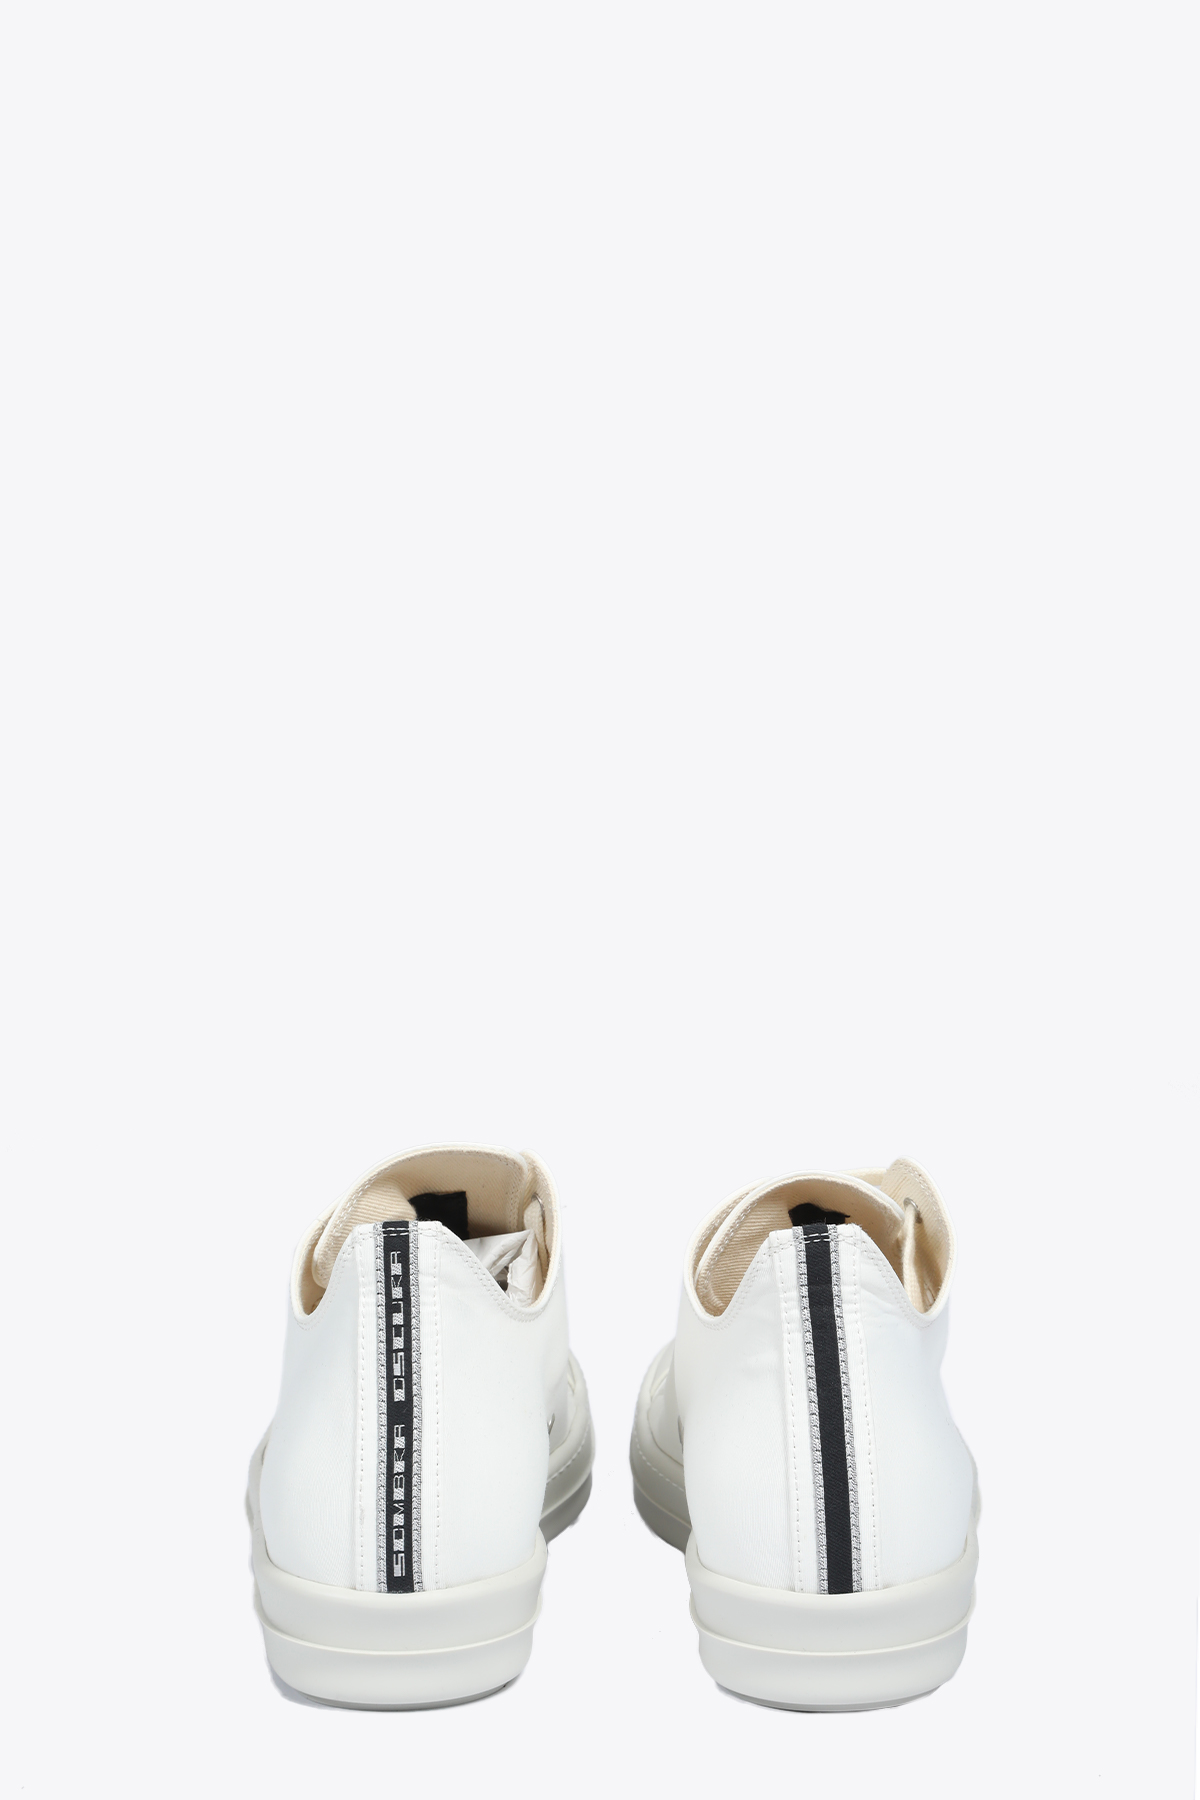 LOW SNEAKERS RICK OWENS-DRKSHDW | 10000039 | DU20S5802 MUEH4 LOW SNEAKERS110